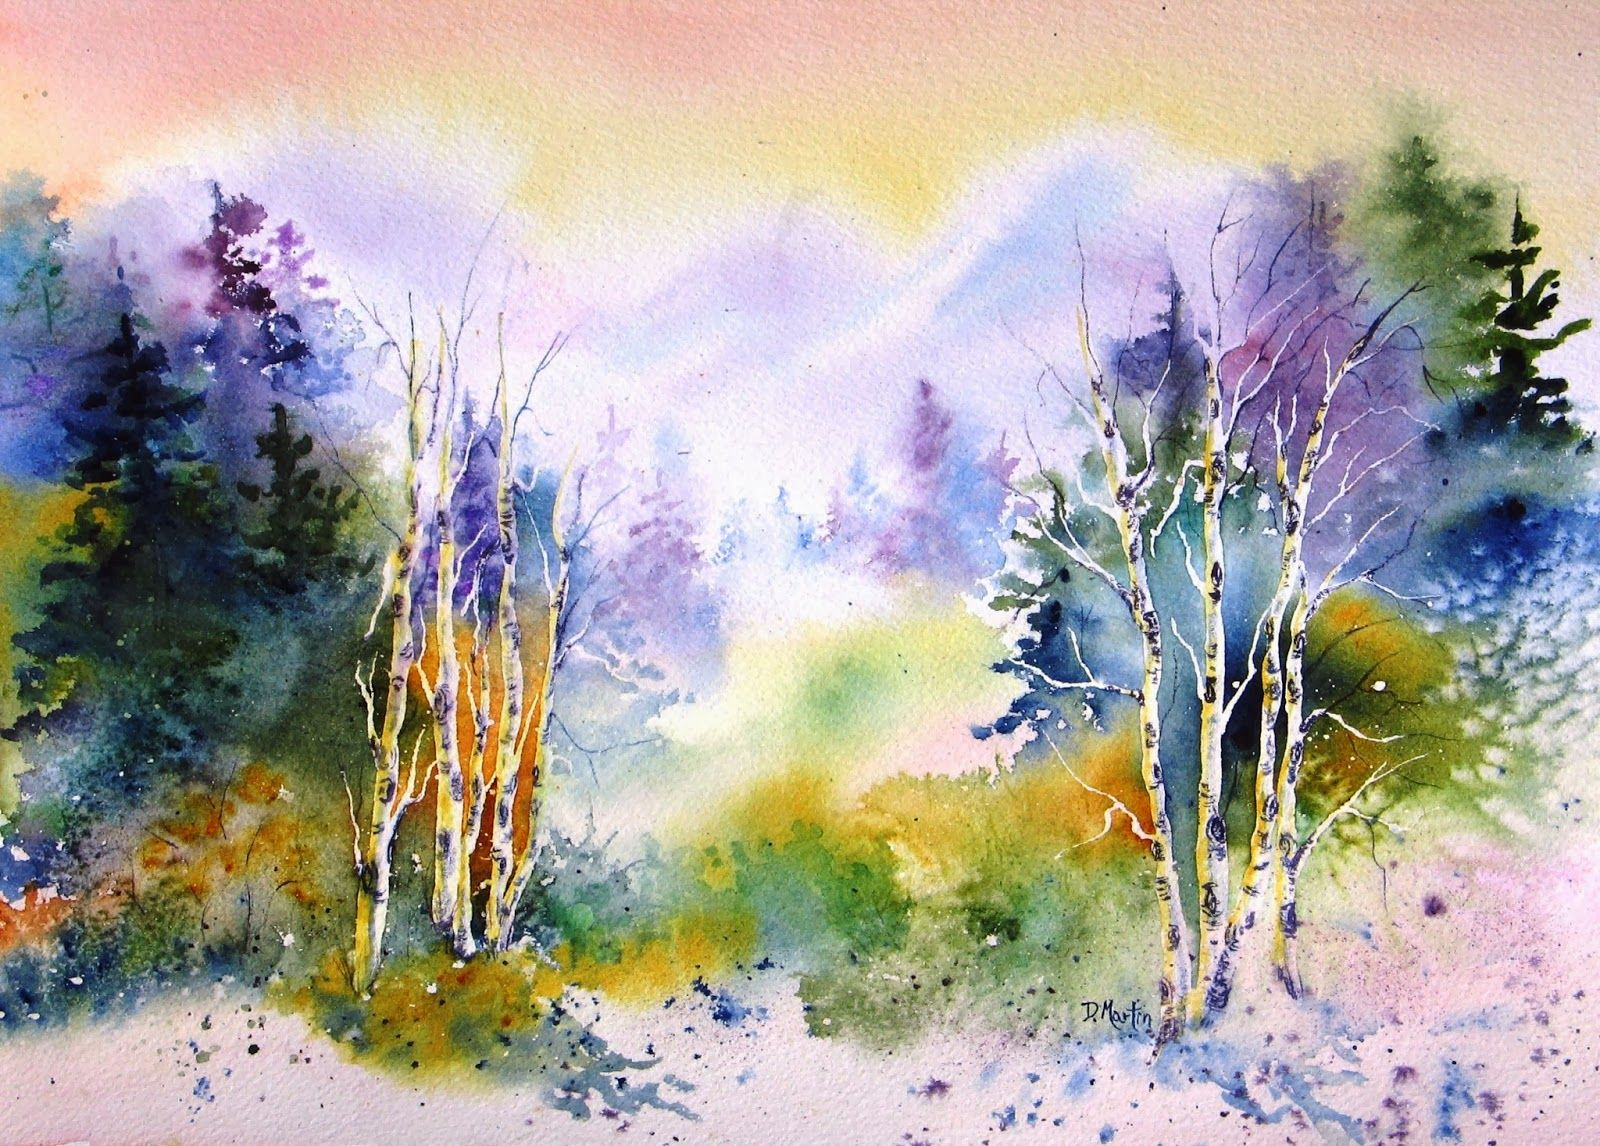 watercolor paintings images - HD1600×1146